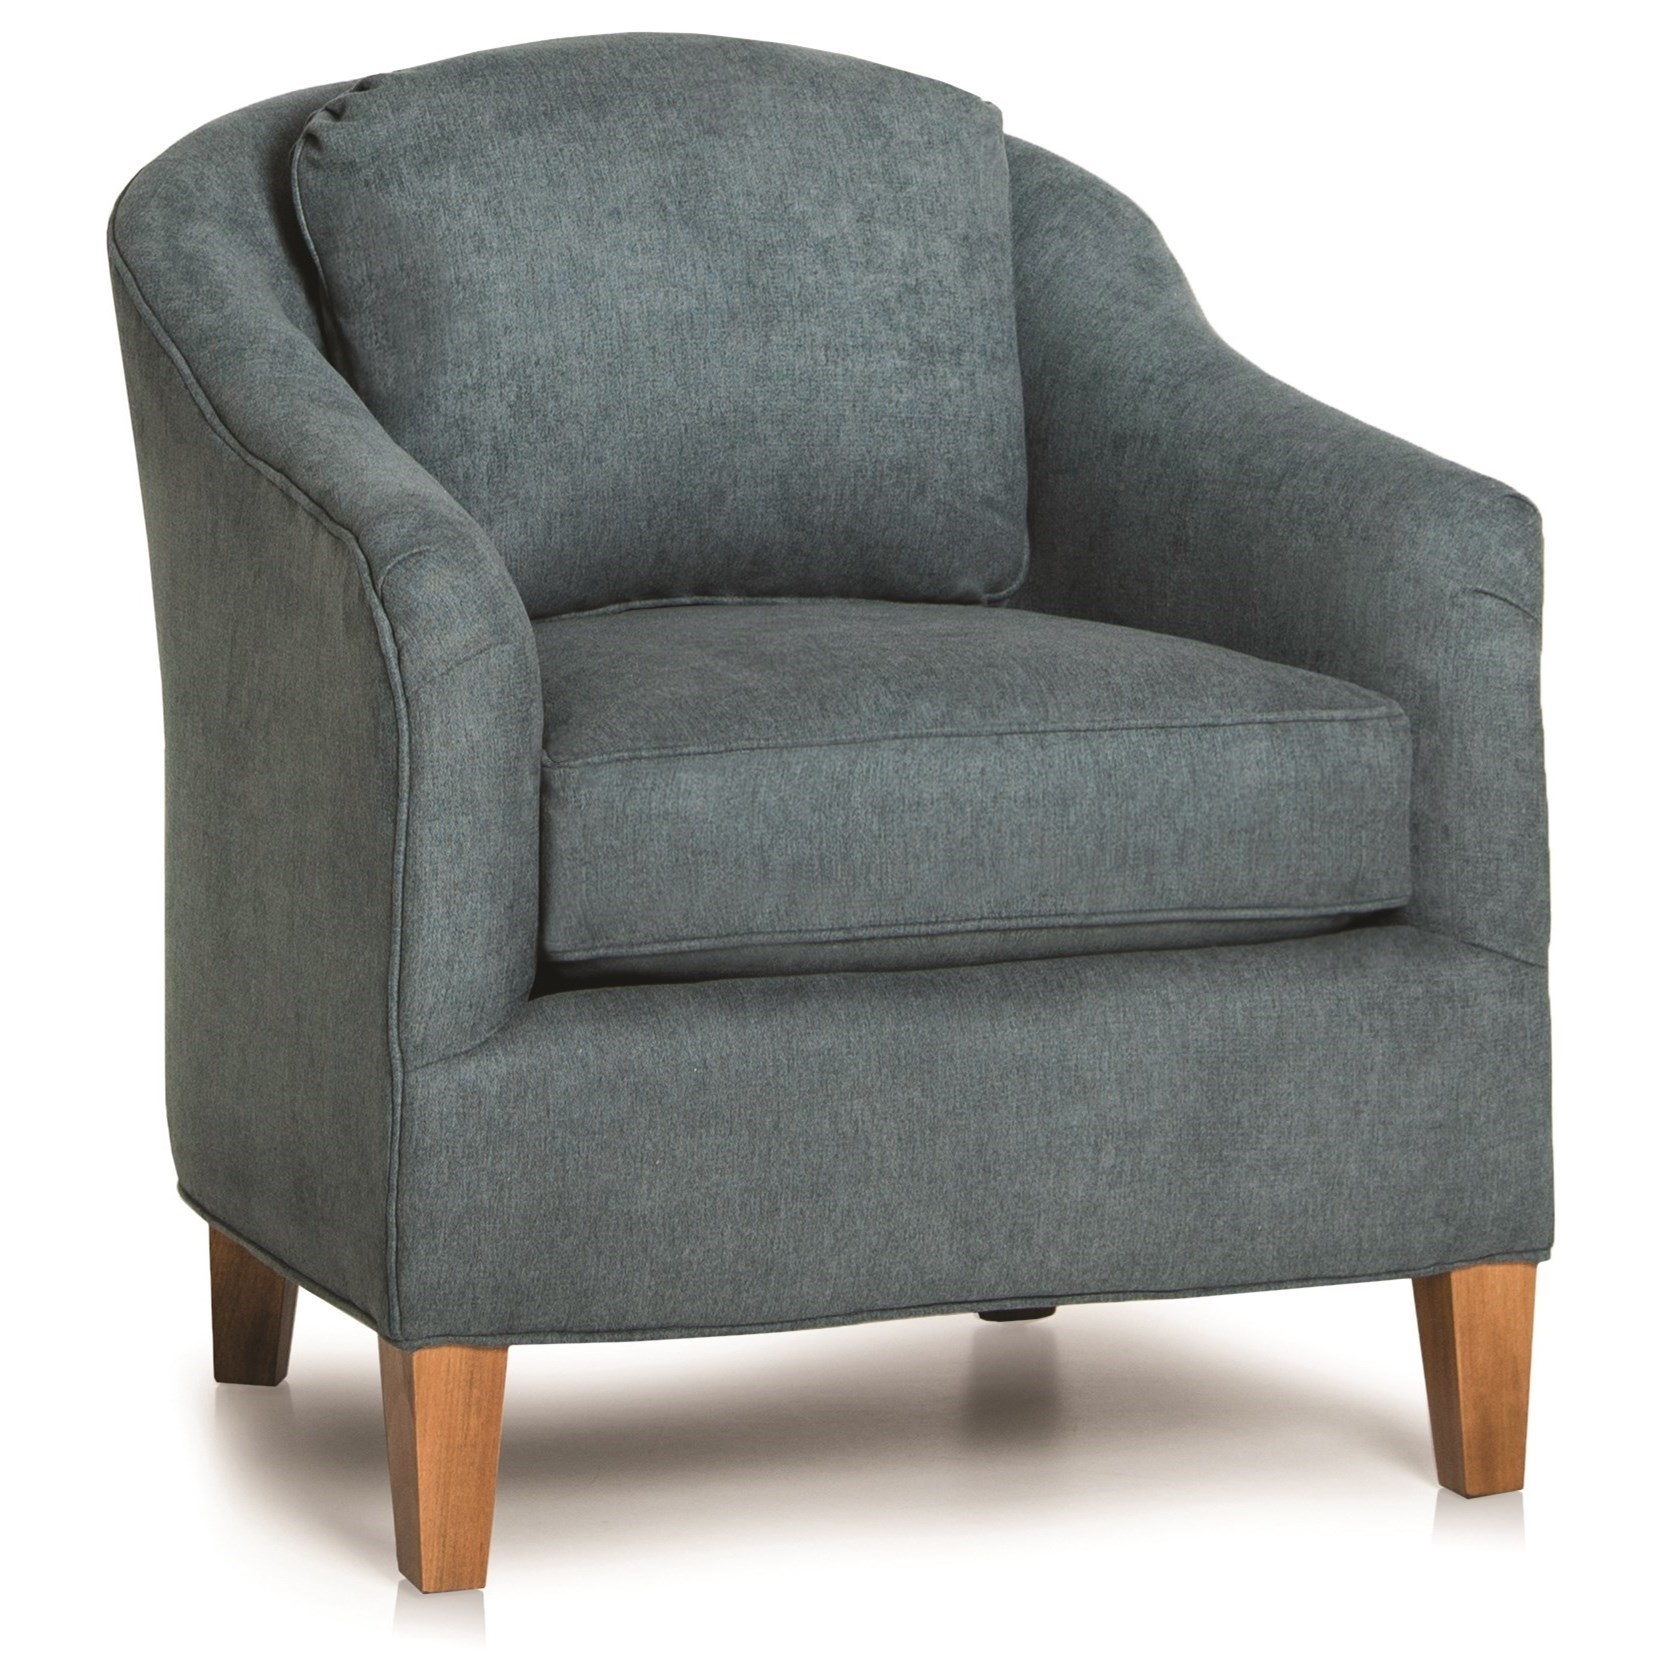 Contemporary Barrel Chair with Sloped Arms